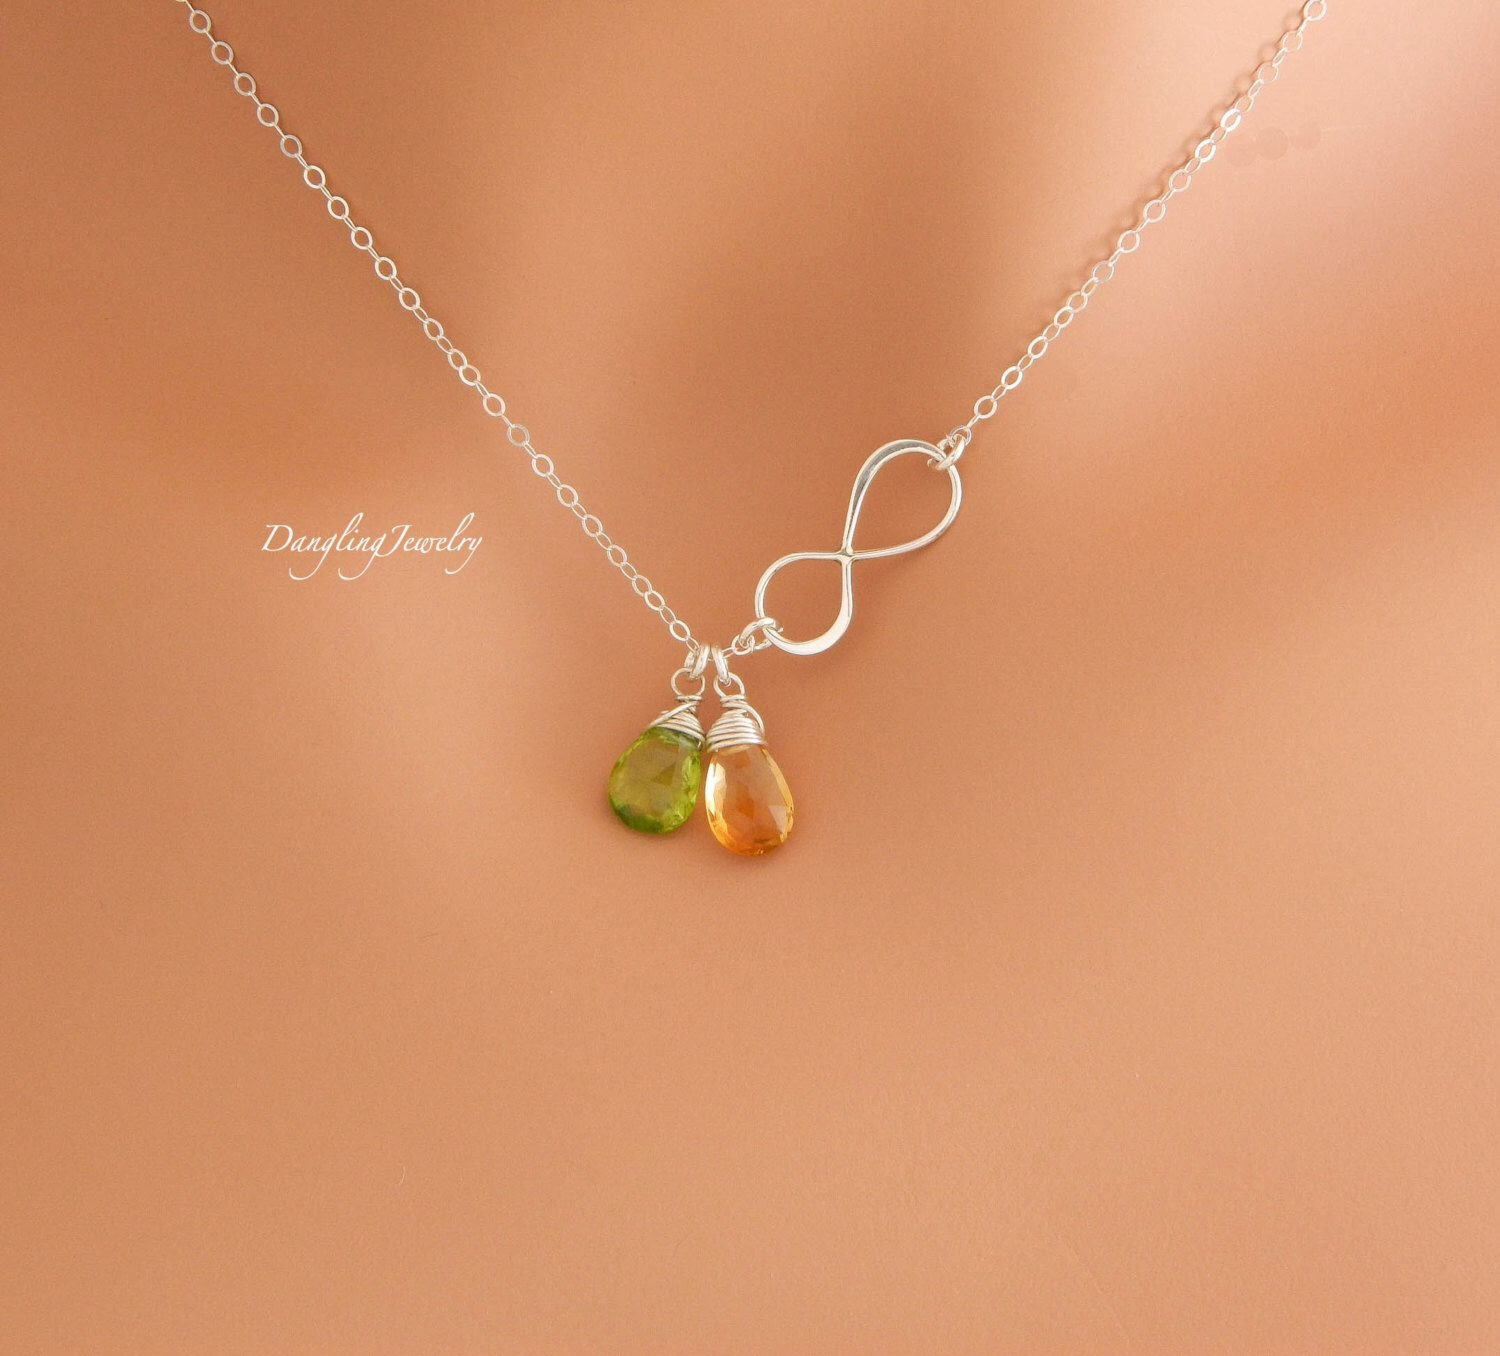 uk necklace mother jewellery infinity heart silver daughter kaya engraved ladies sisters for forever